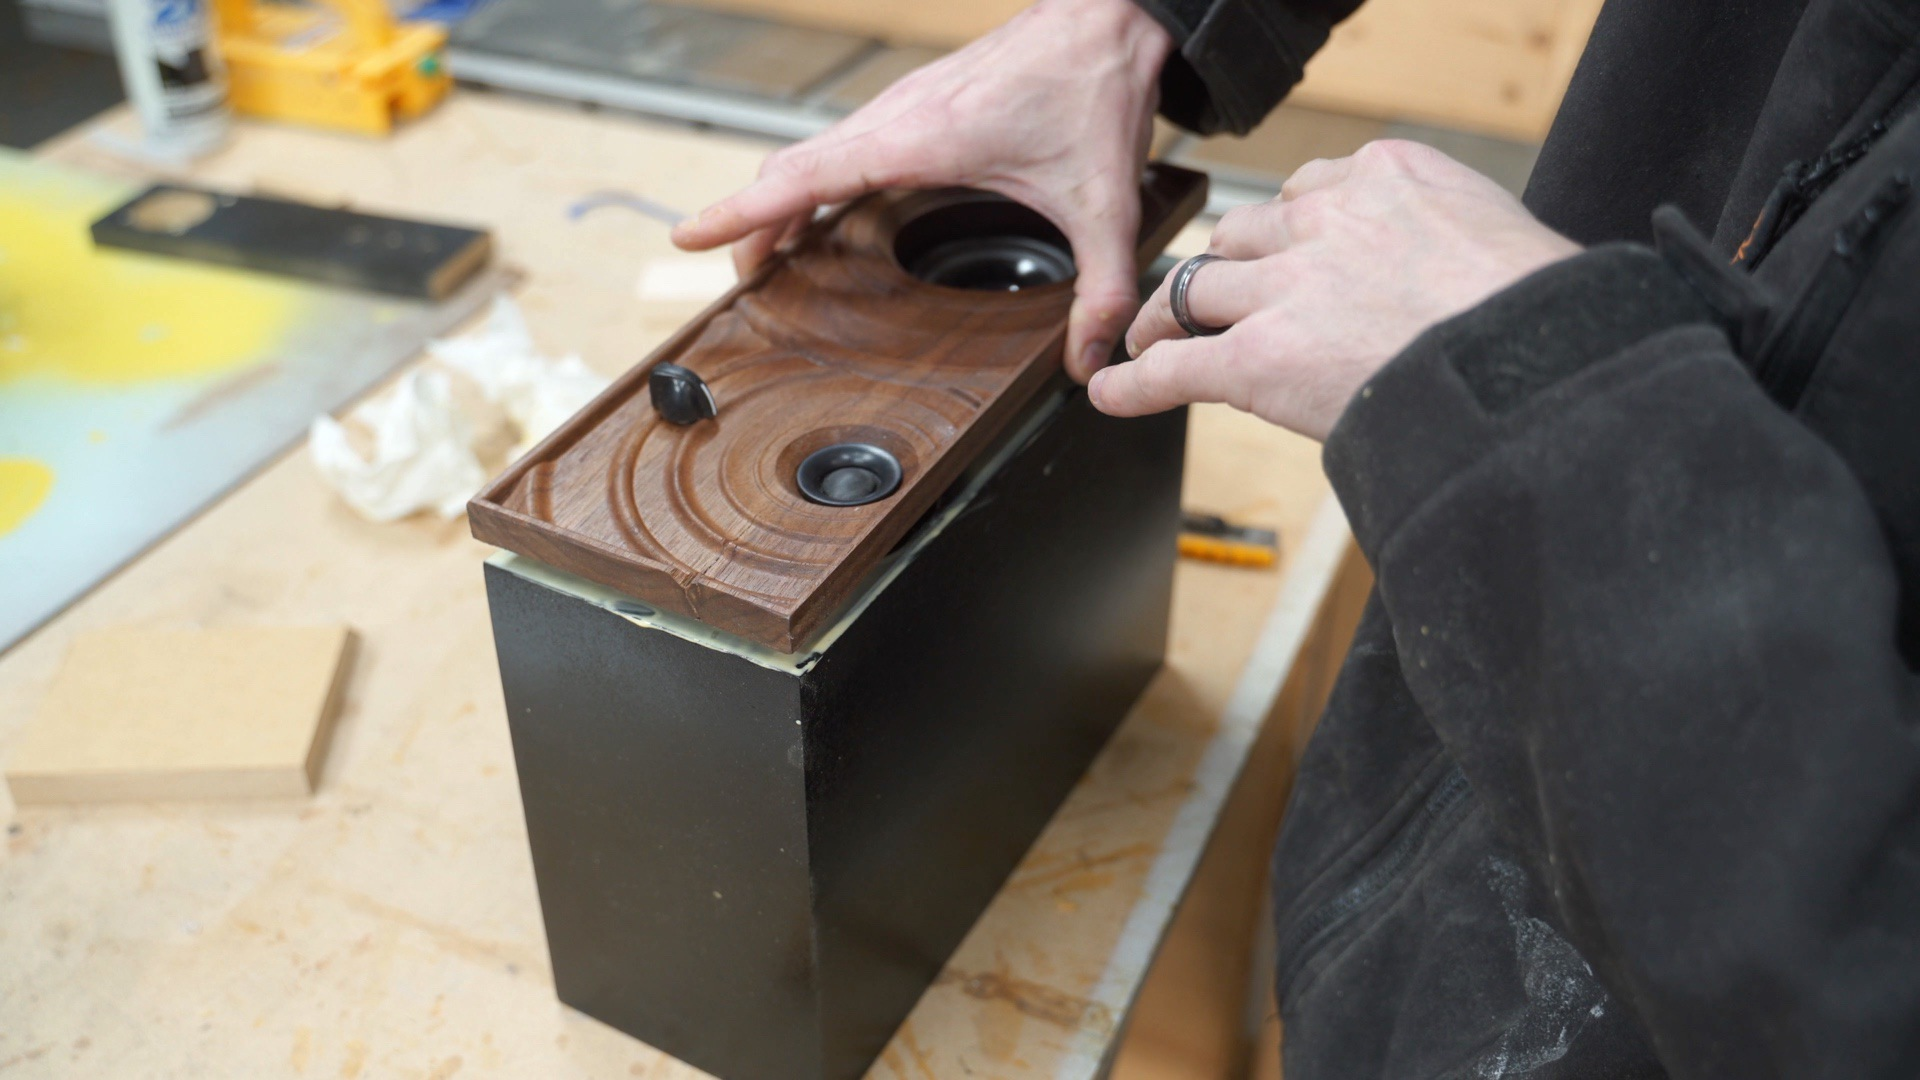 Glue the front face to the Bluetooth speaker box